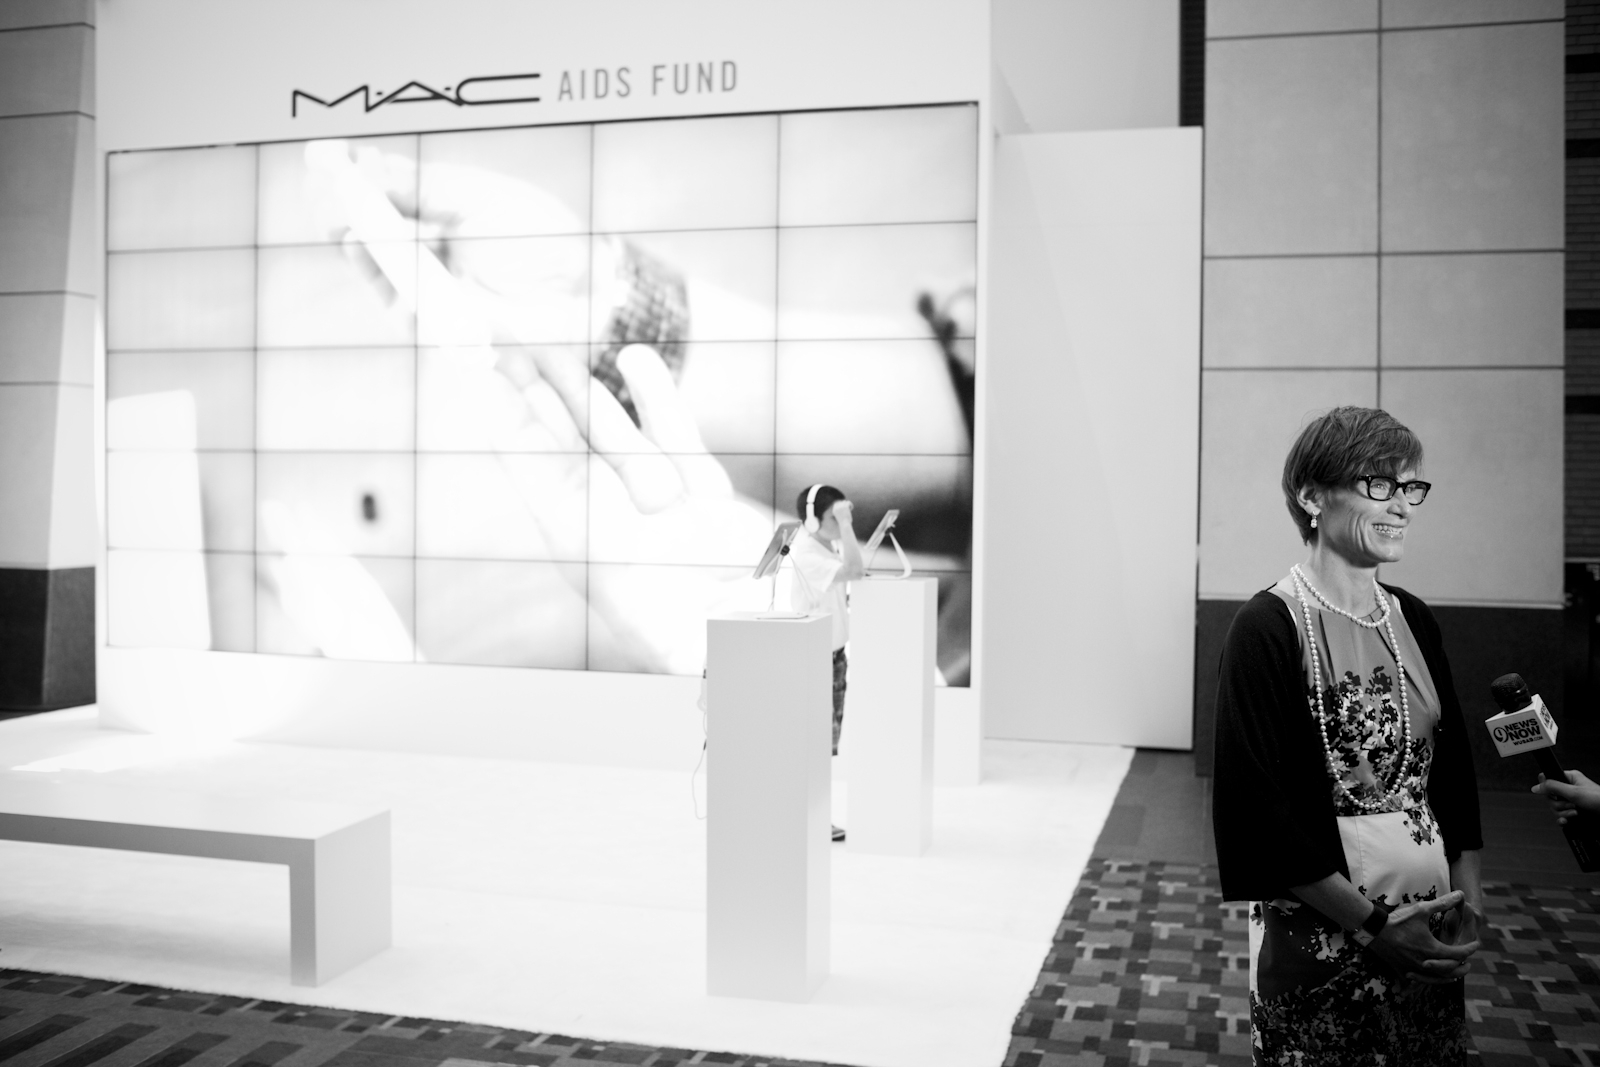 Nancy Mahon, Estee Lauder's newly appointed SVP of global philanthropy and corporate citizenship, stands outside of a MAC Aids Fund display.